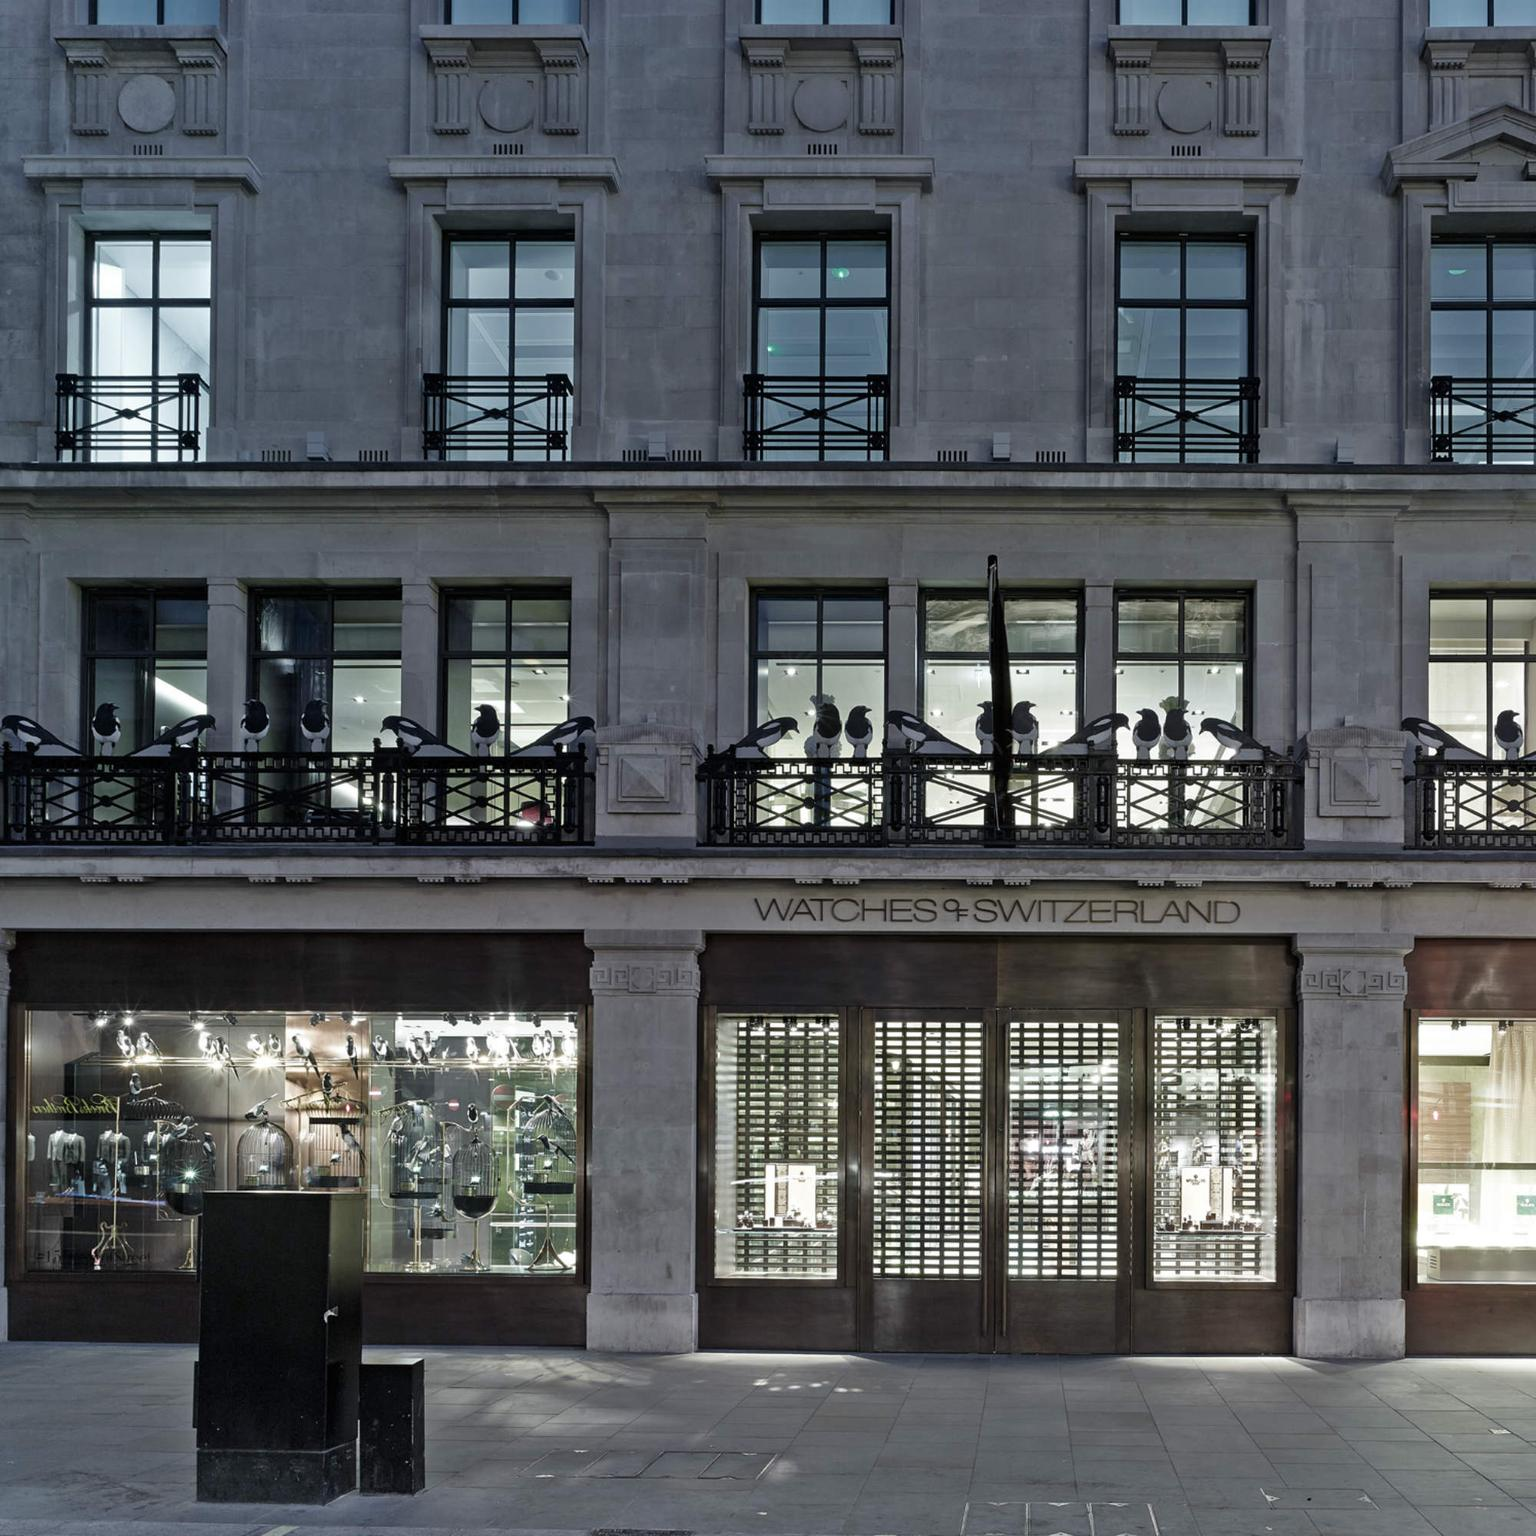 Watches of Switzerland flagship on Regent Street in London